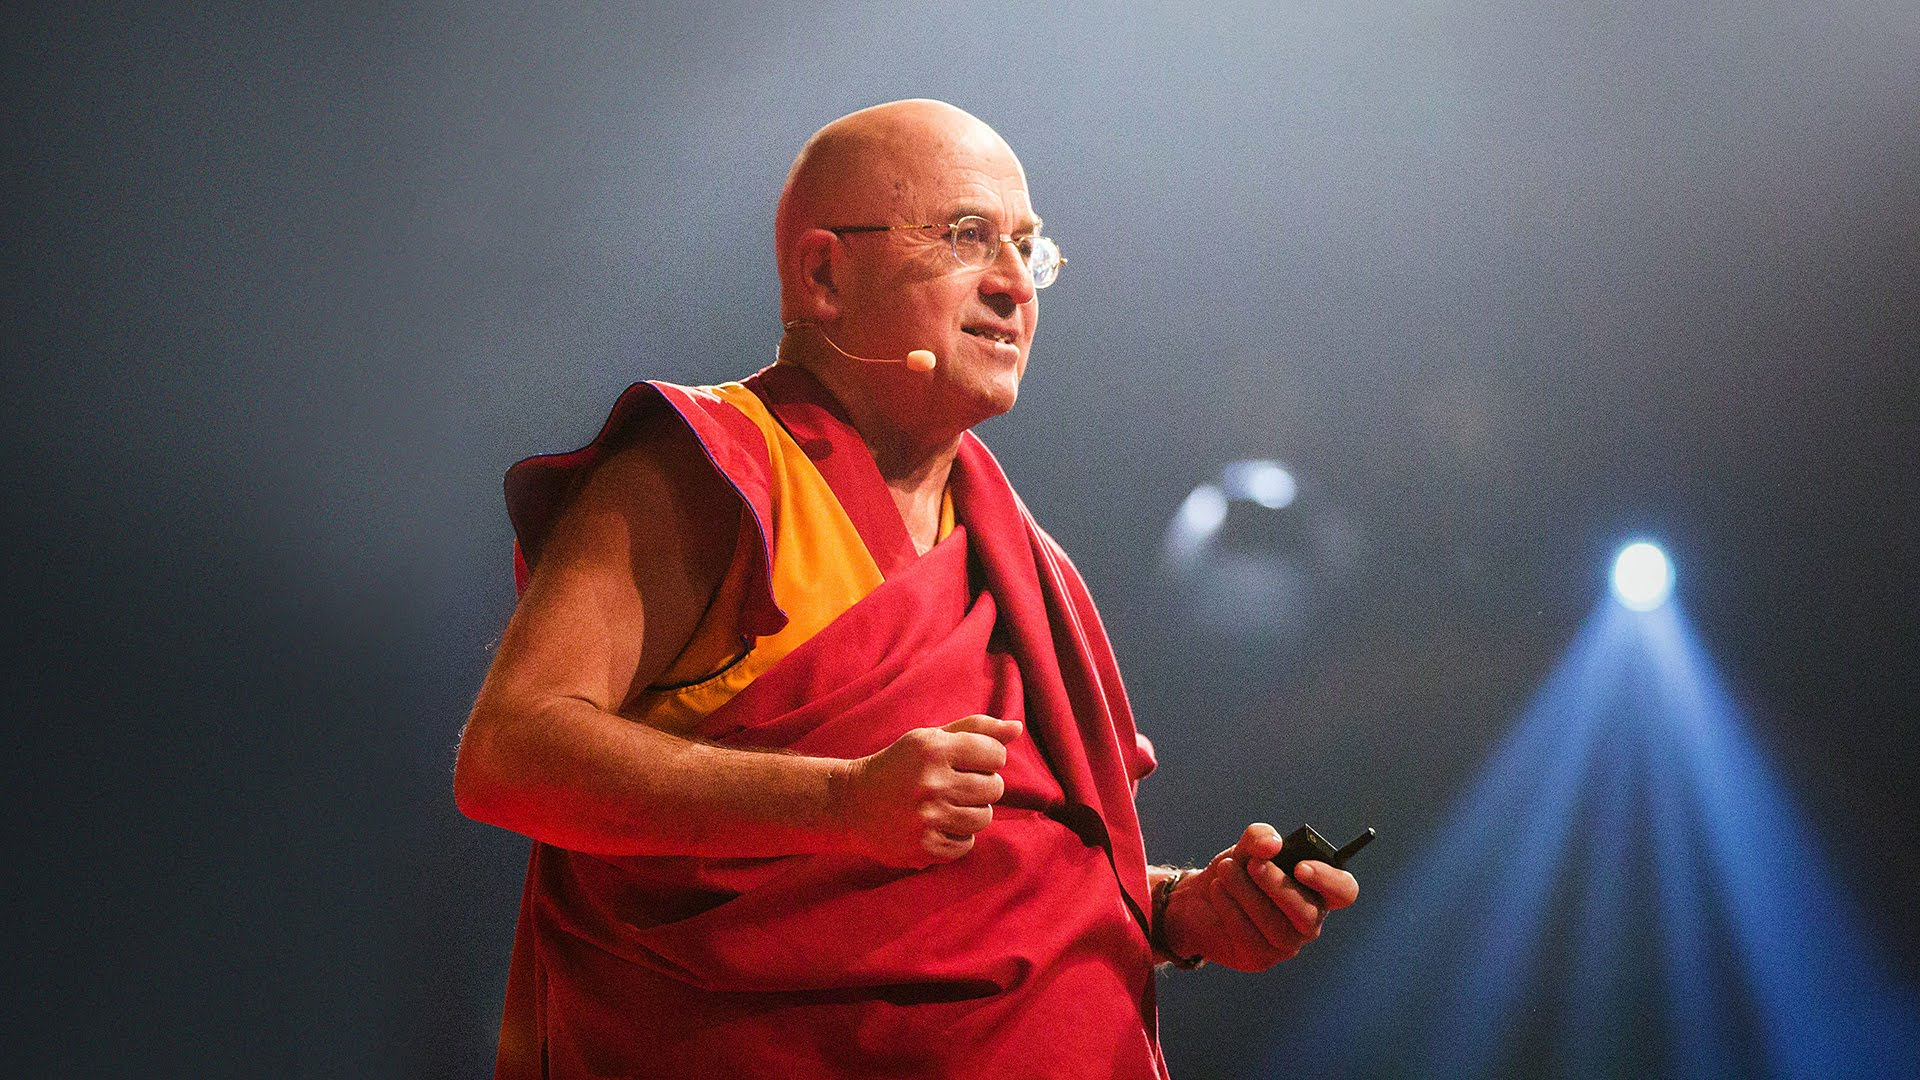 Matthieu Ricard, philosopher and best-selling author of books on happiness and compassion.